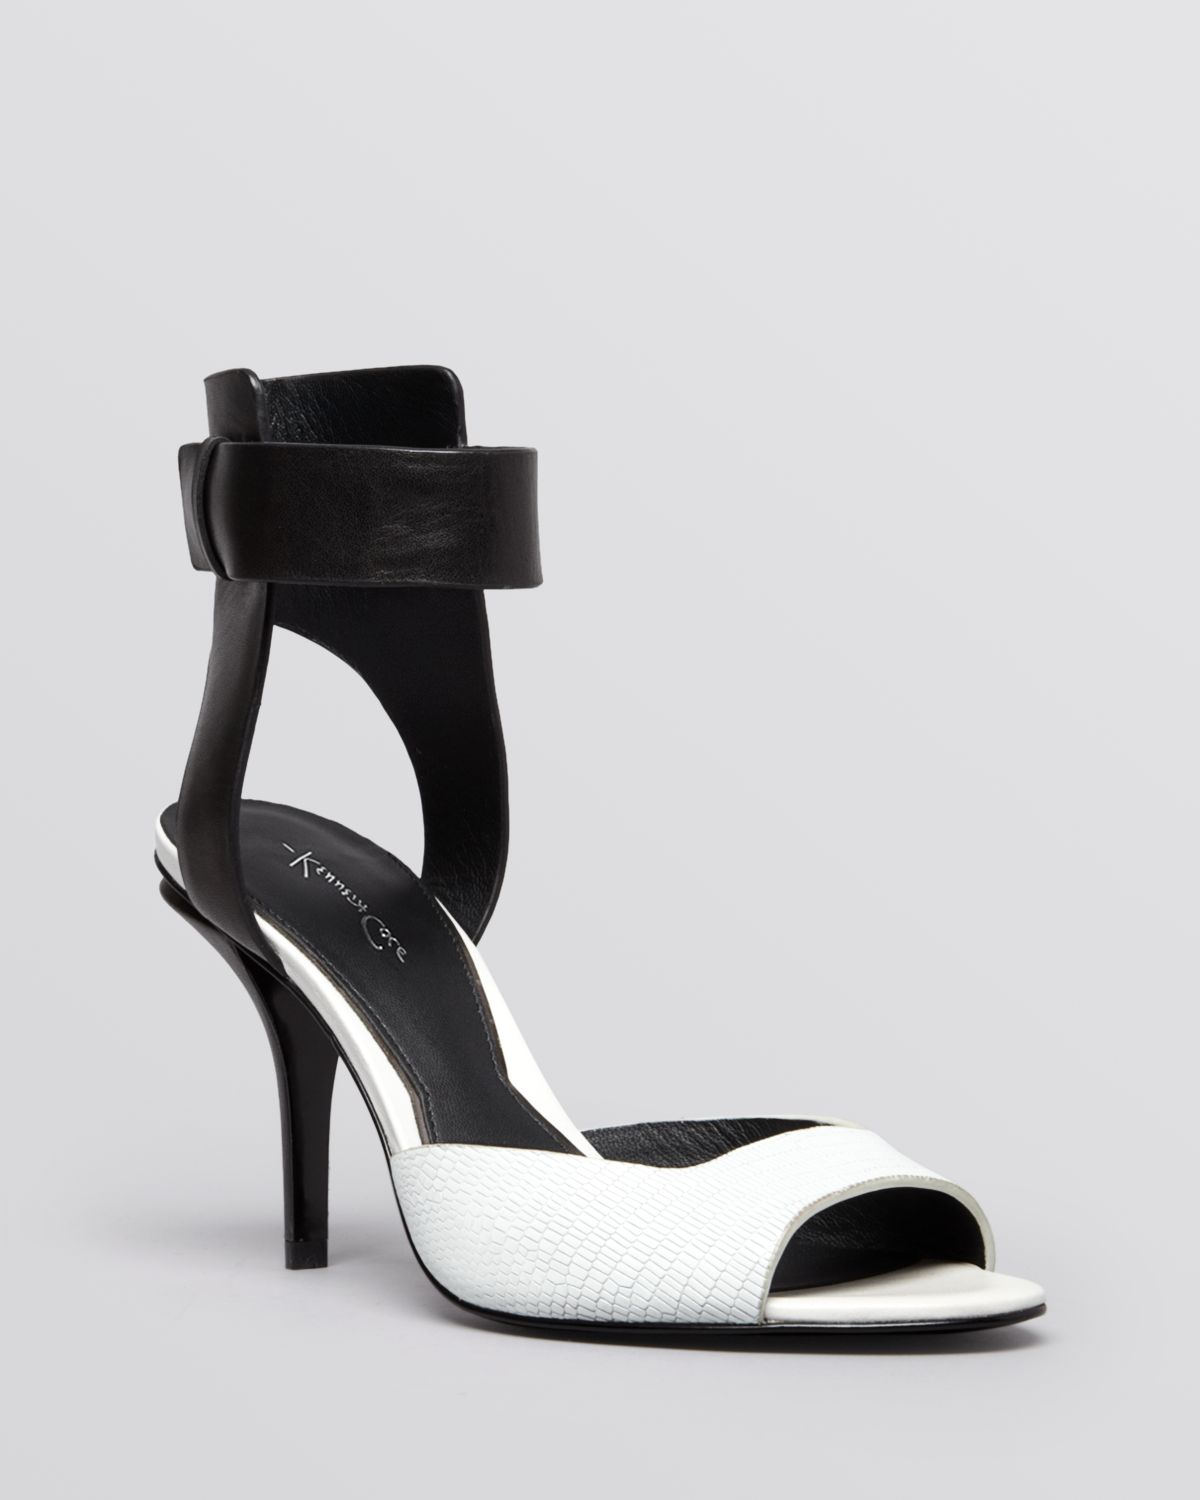 Black And White Sandals With Heel